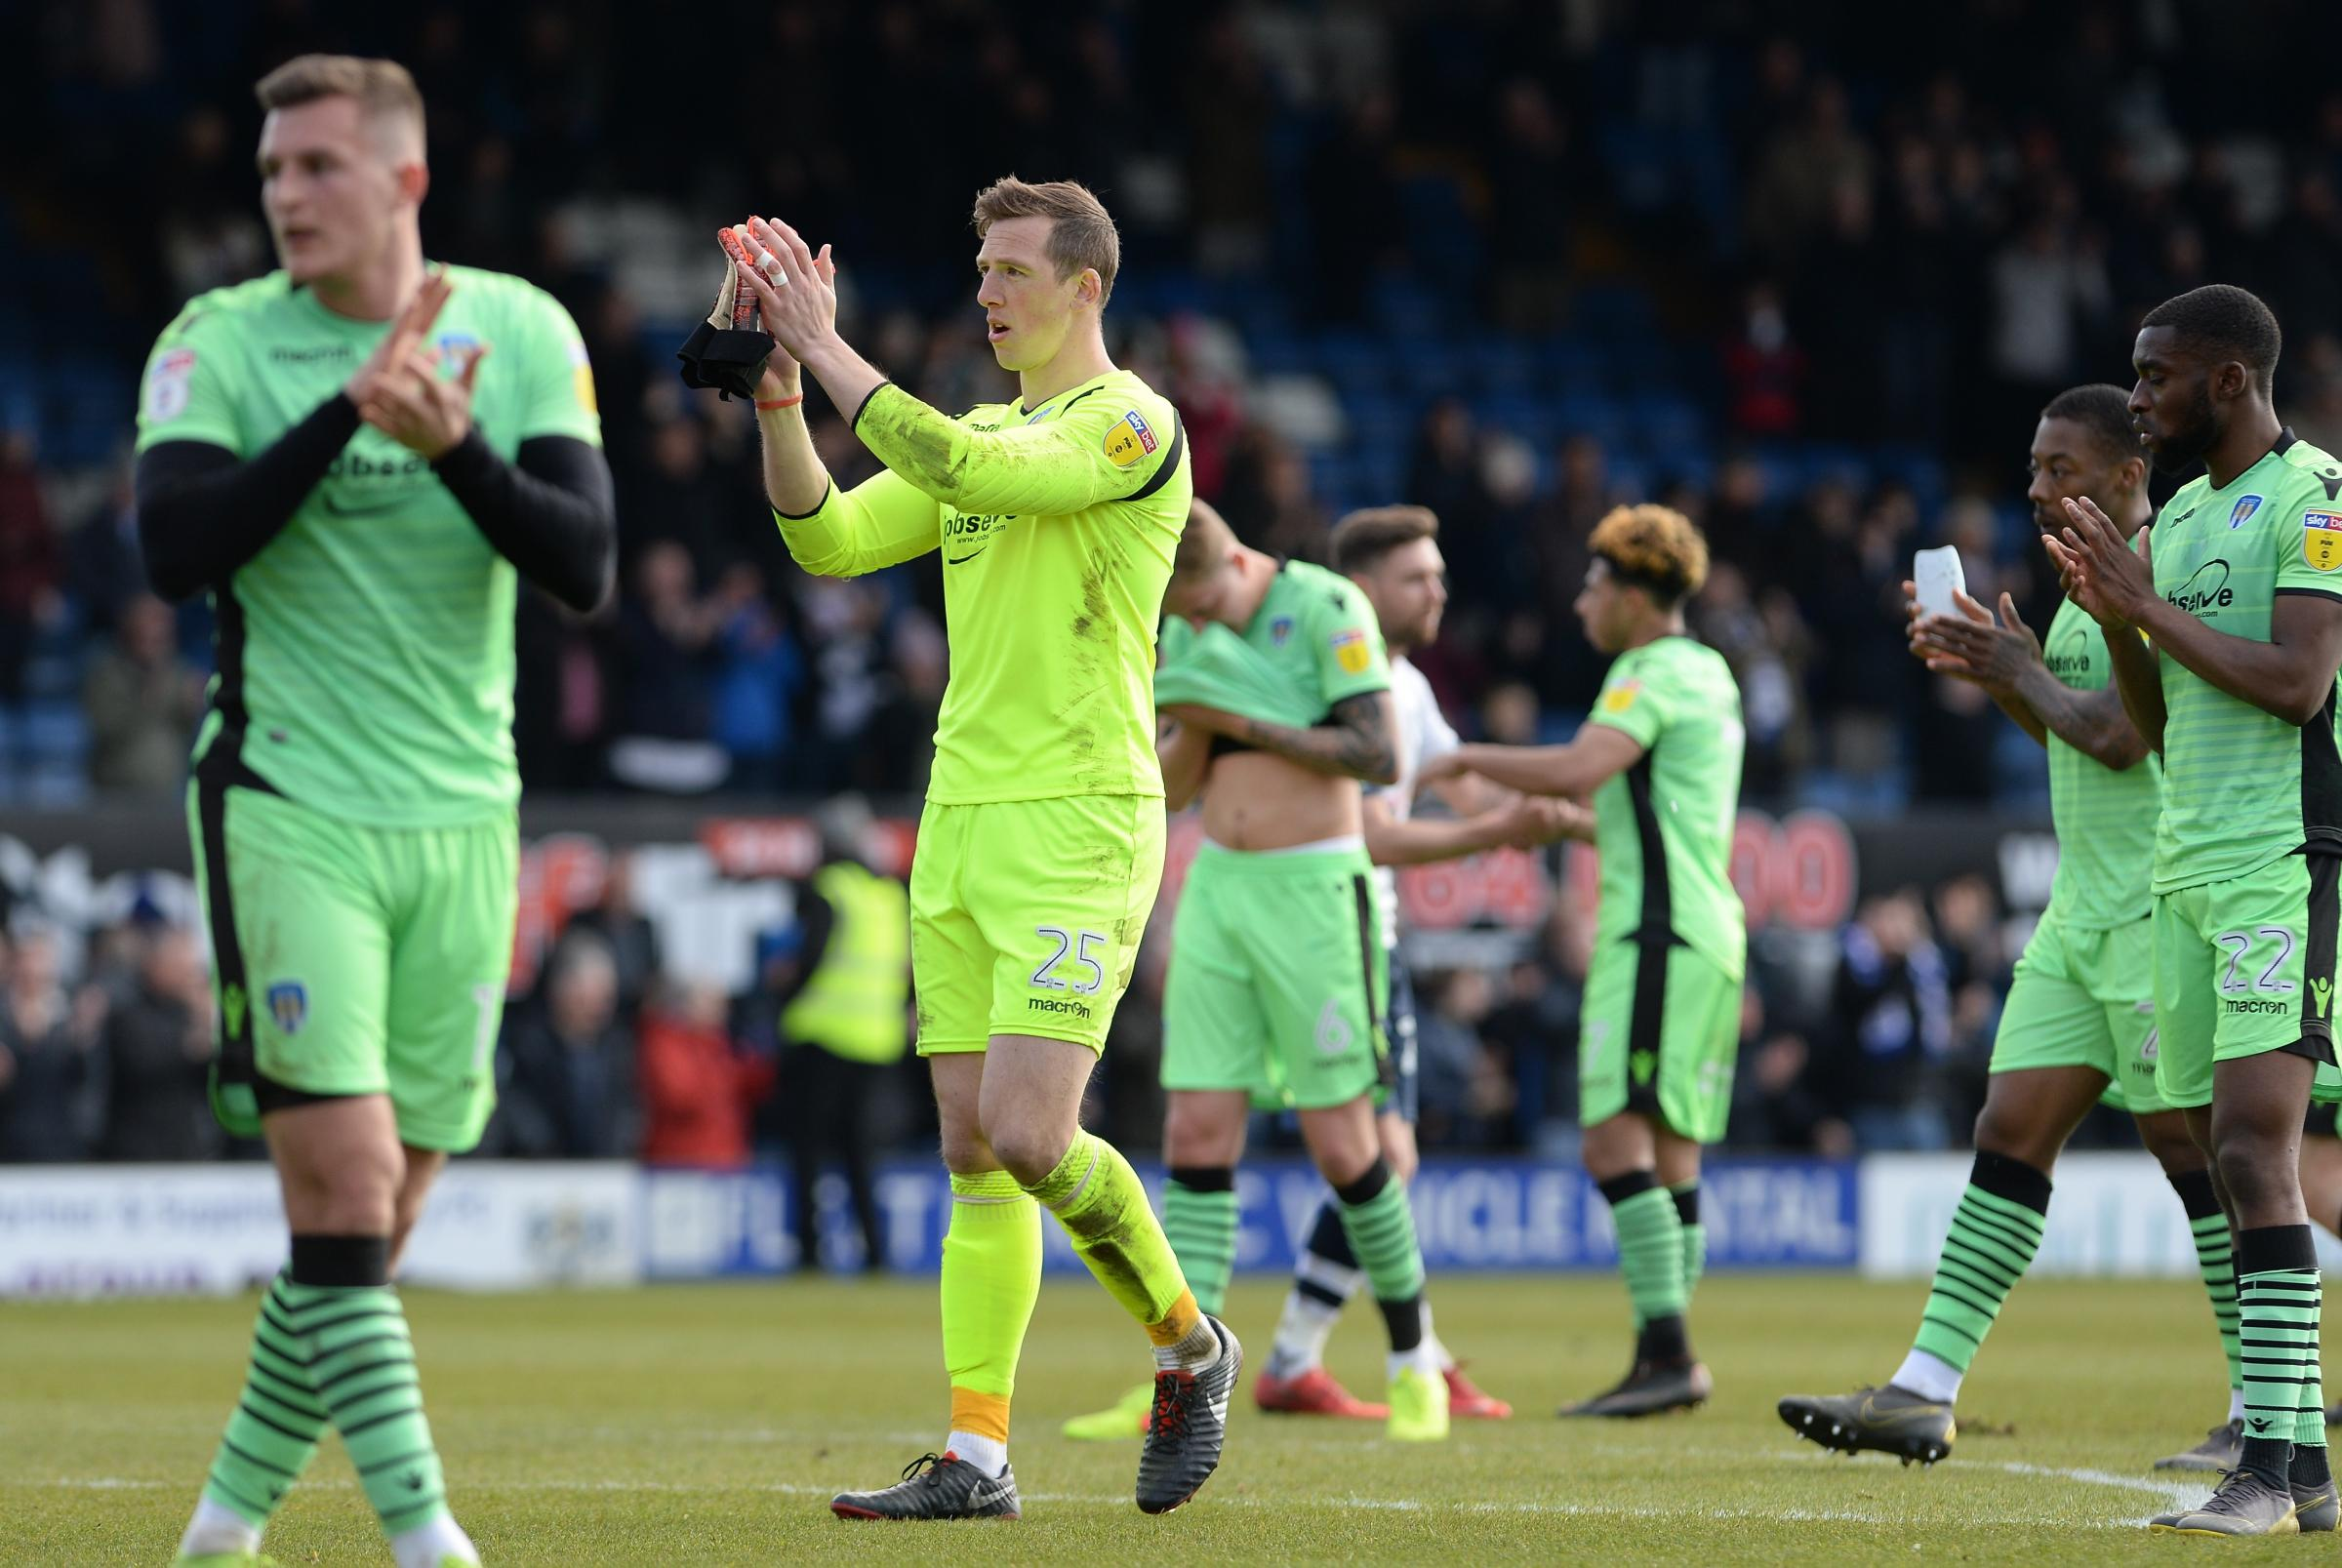 Thank you - Colchester United's players applaud their supporters following their 2-0 defeat at Bury Picture: PAGEPIX